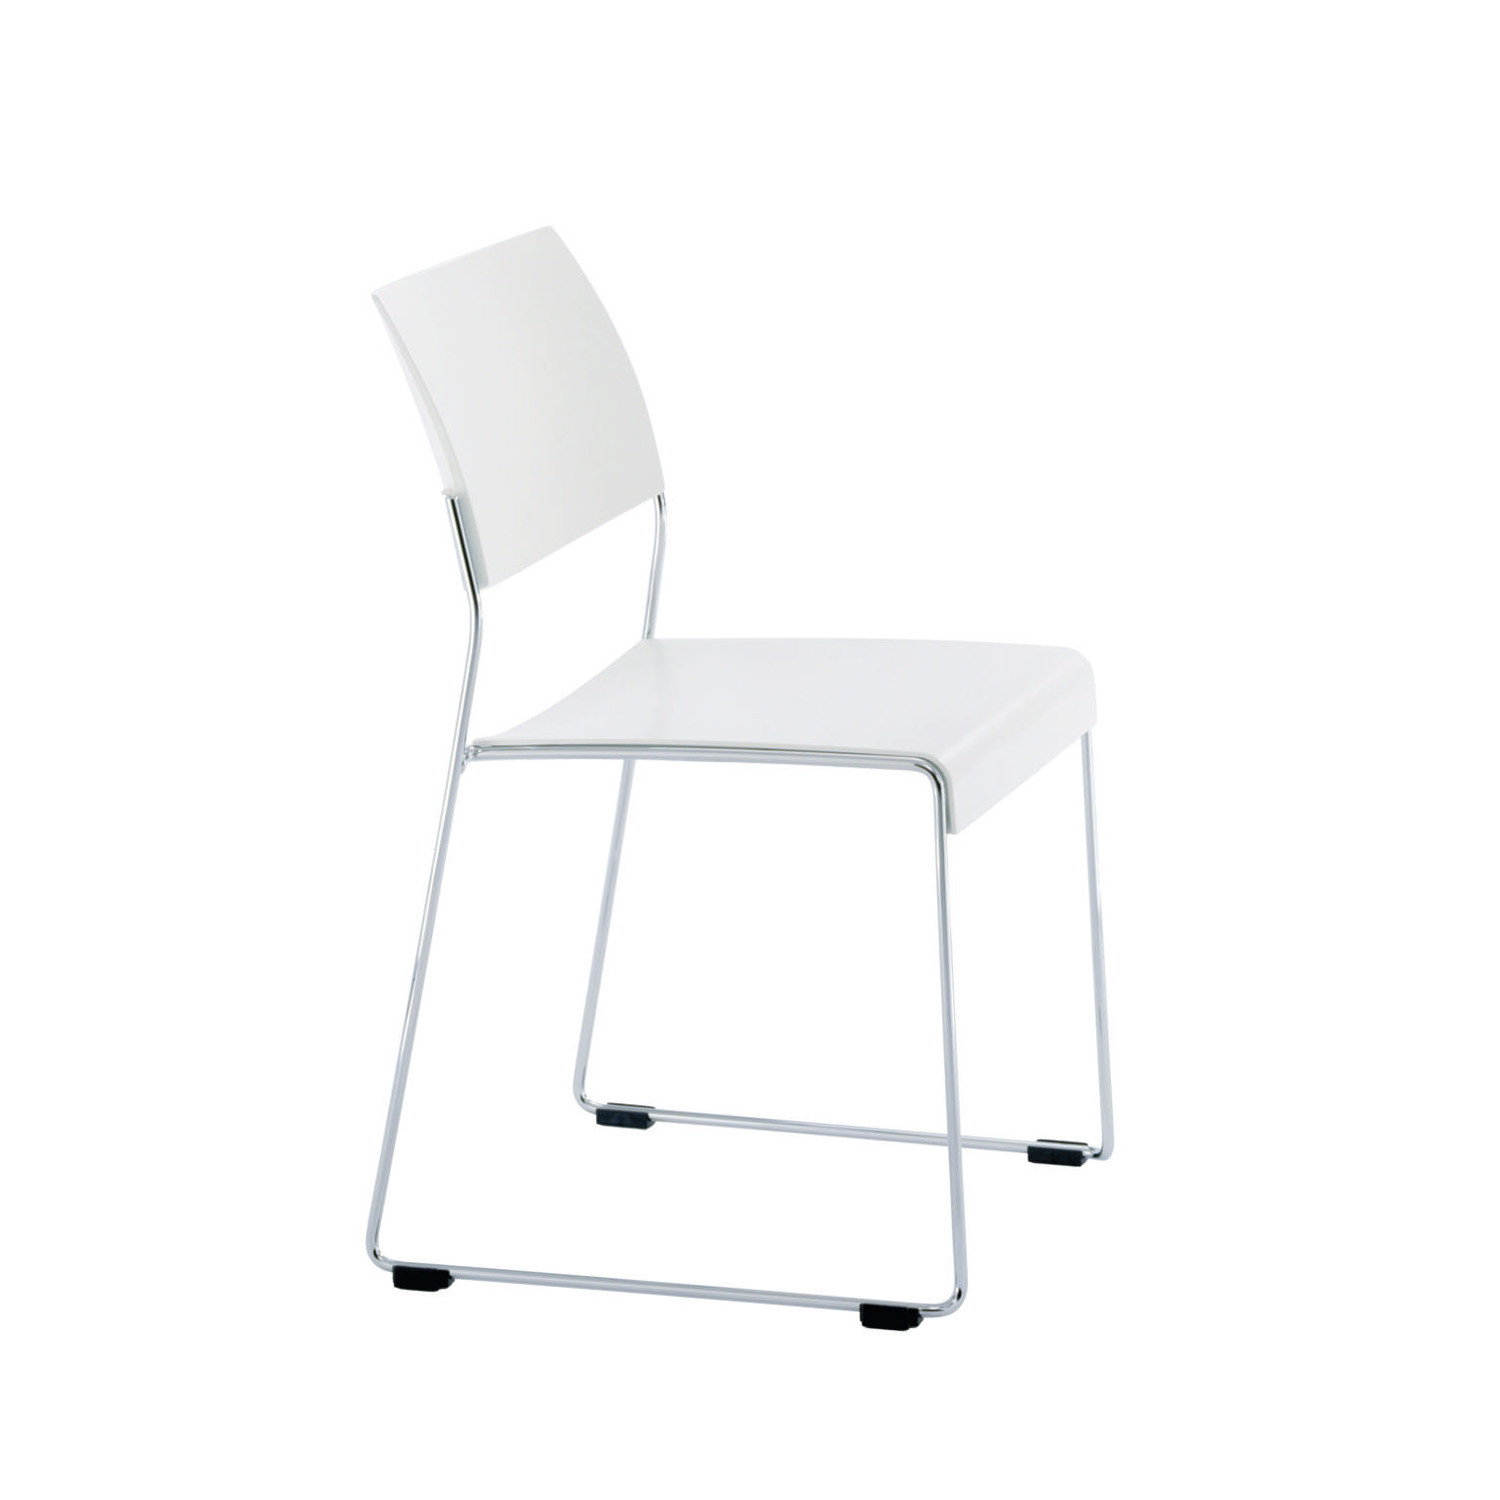 Linos Plastic Chair for Multipurpose Areas